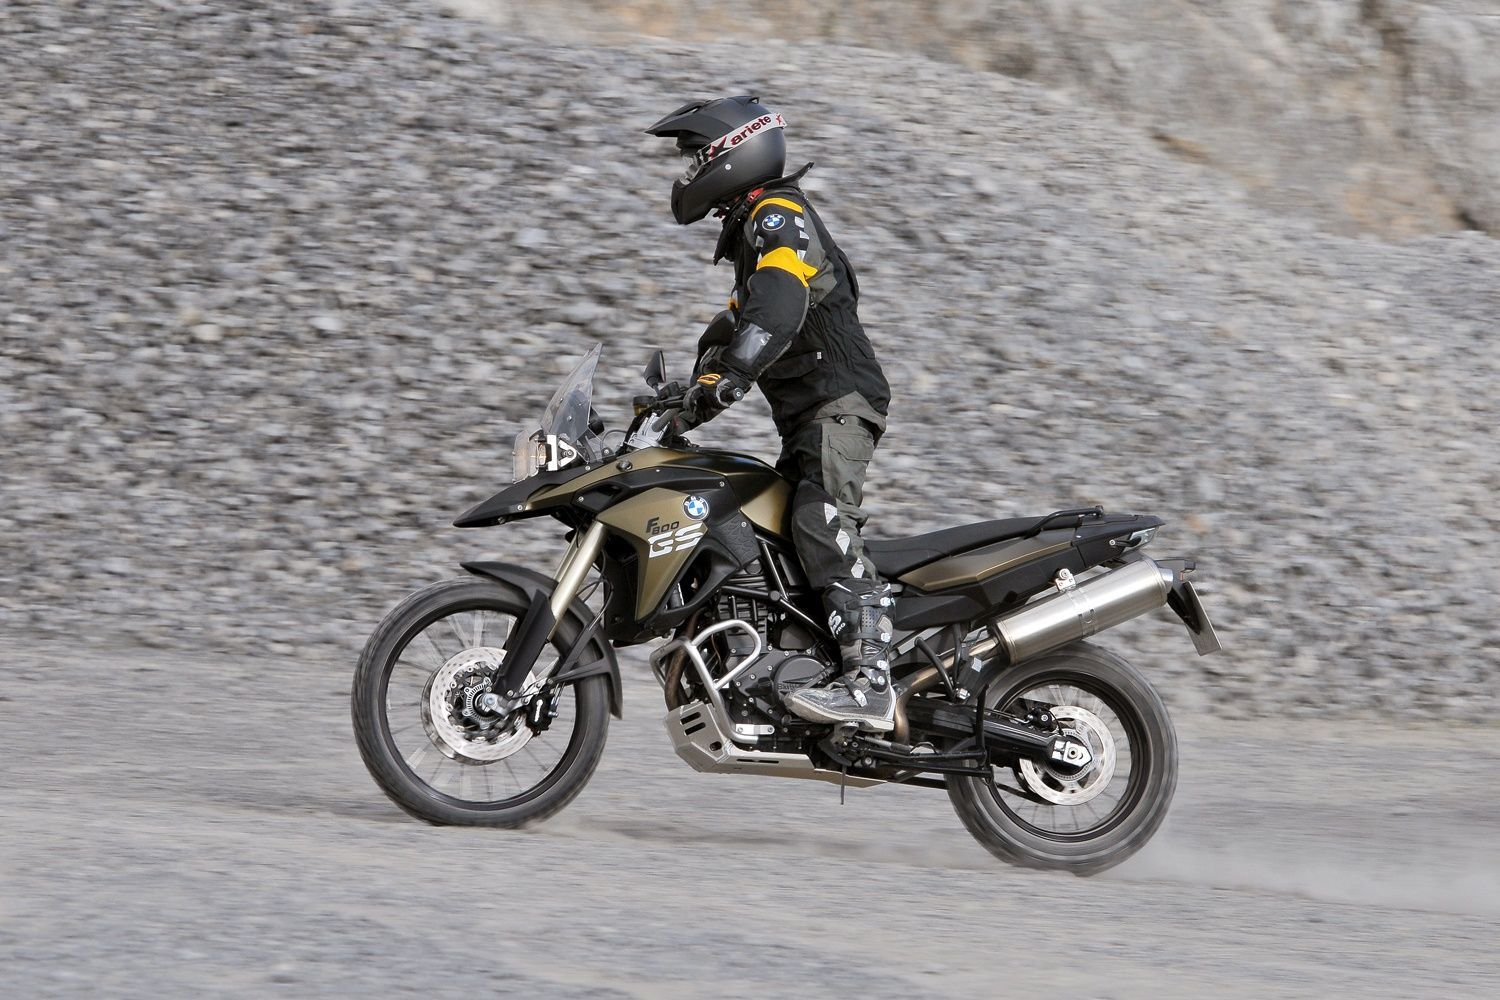 73 BMW F800GS | The Sportiest GS - F800